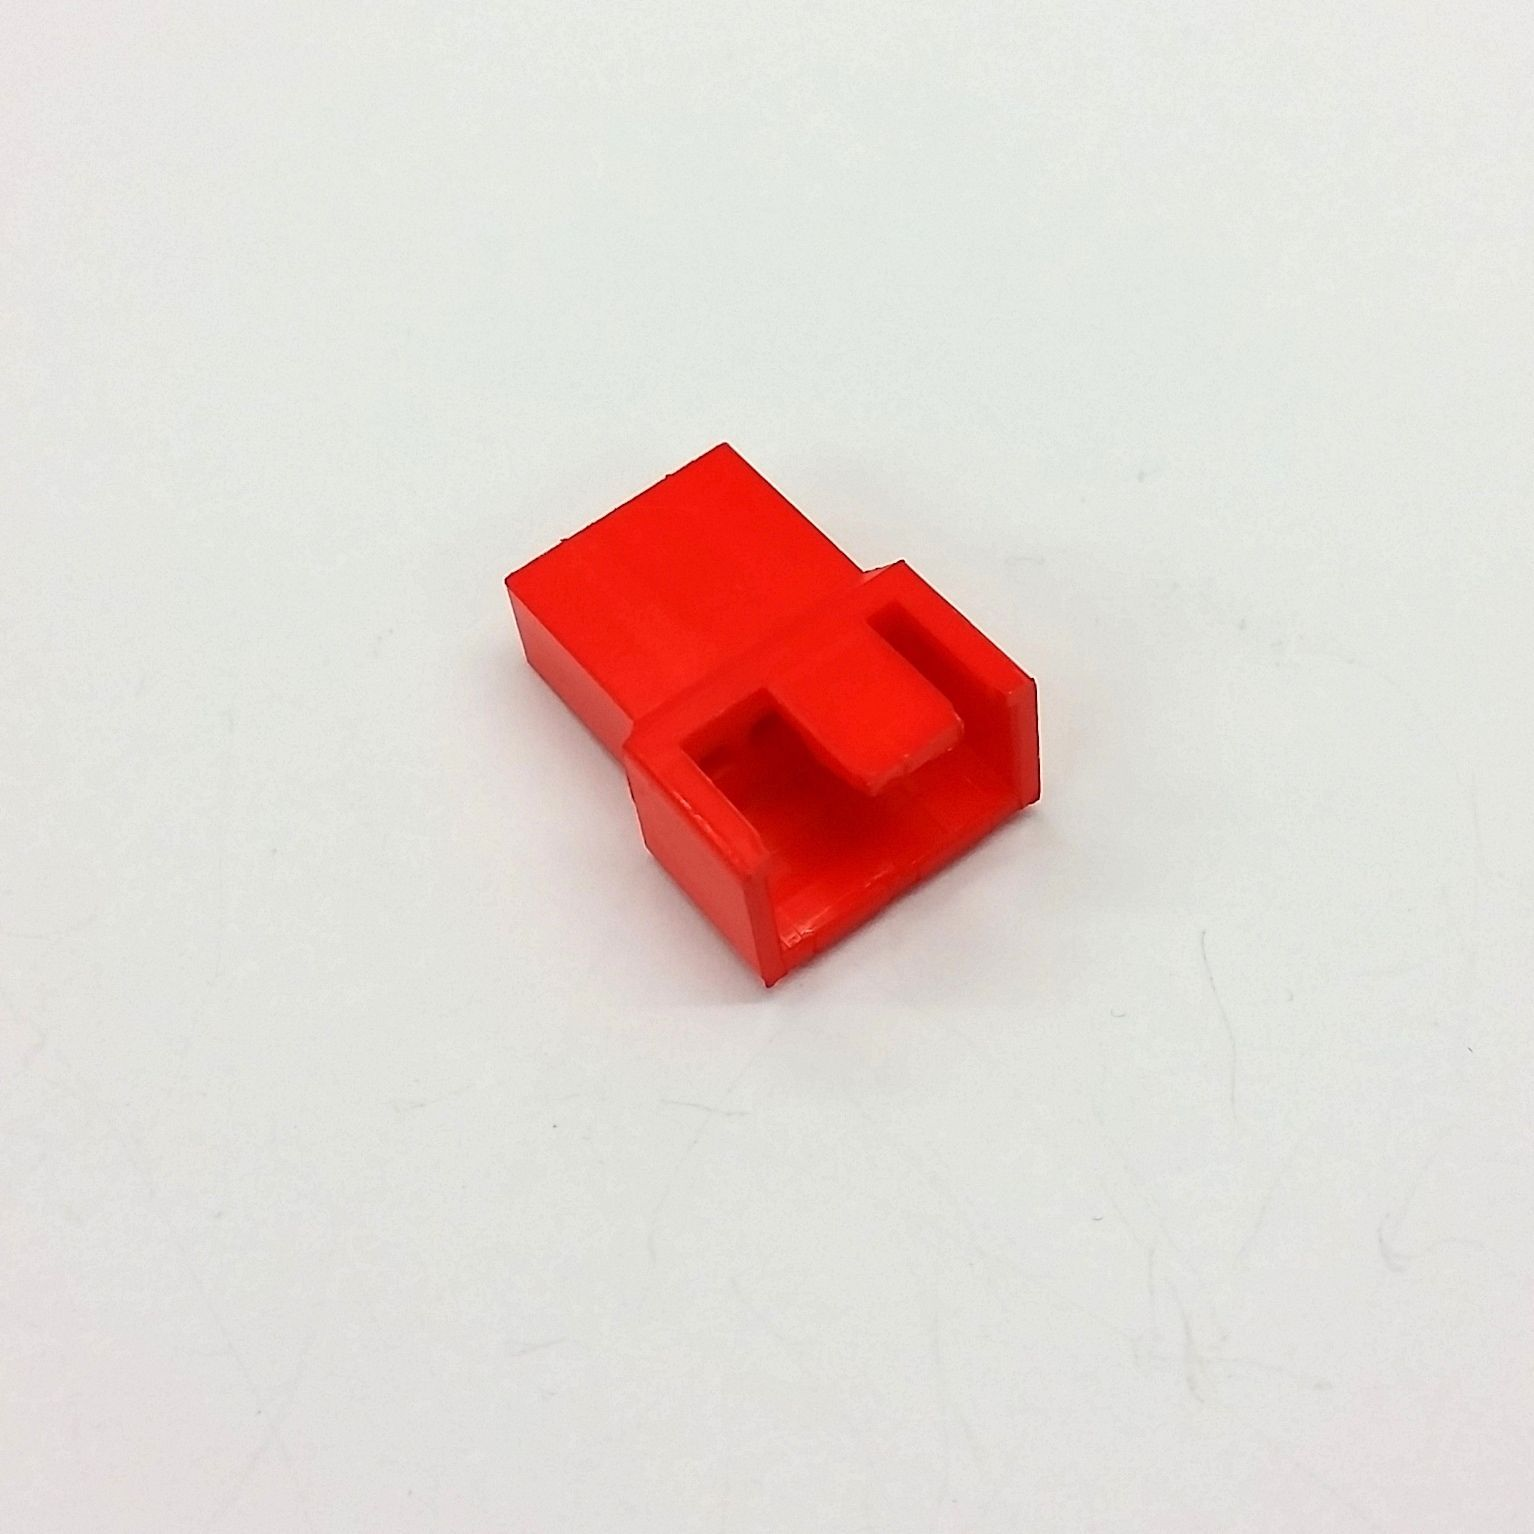 PX of 10 - Stecker 4 Pin Lüfter Strom Verbinder - Rot Farbe Tinte inklusive Pins